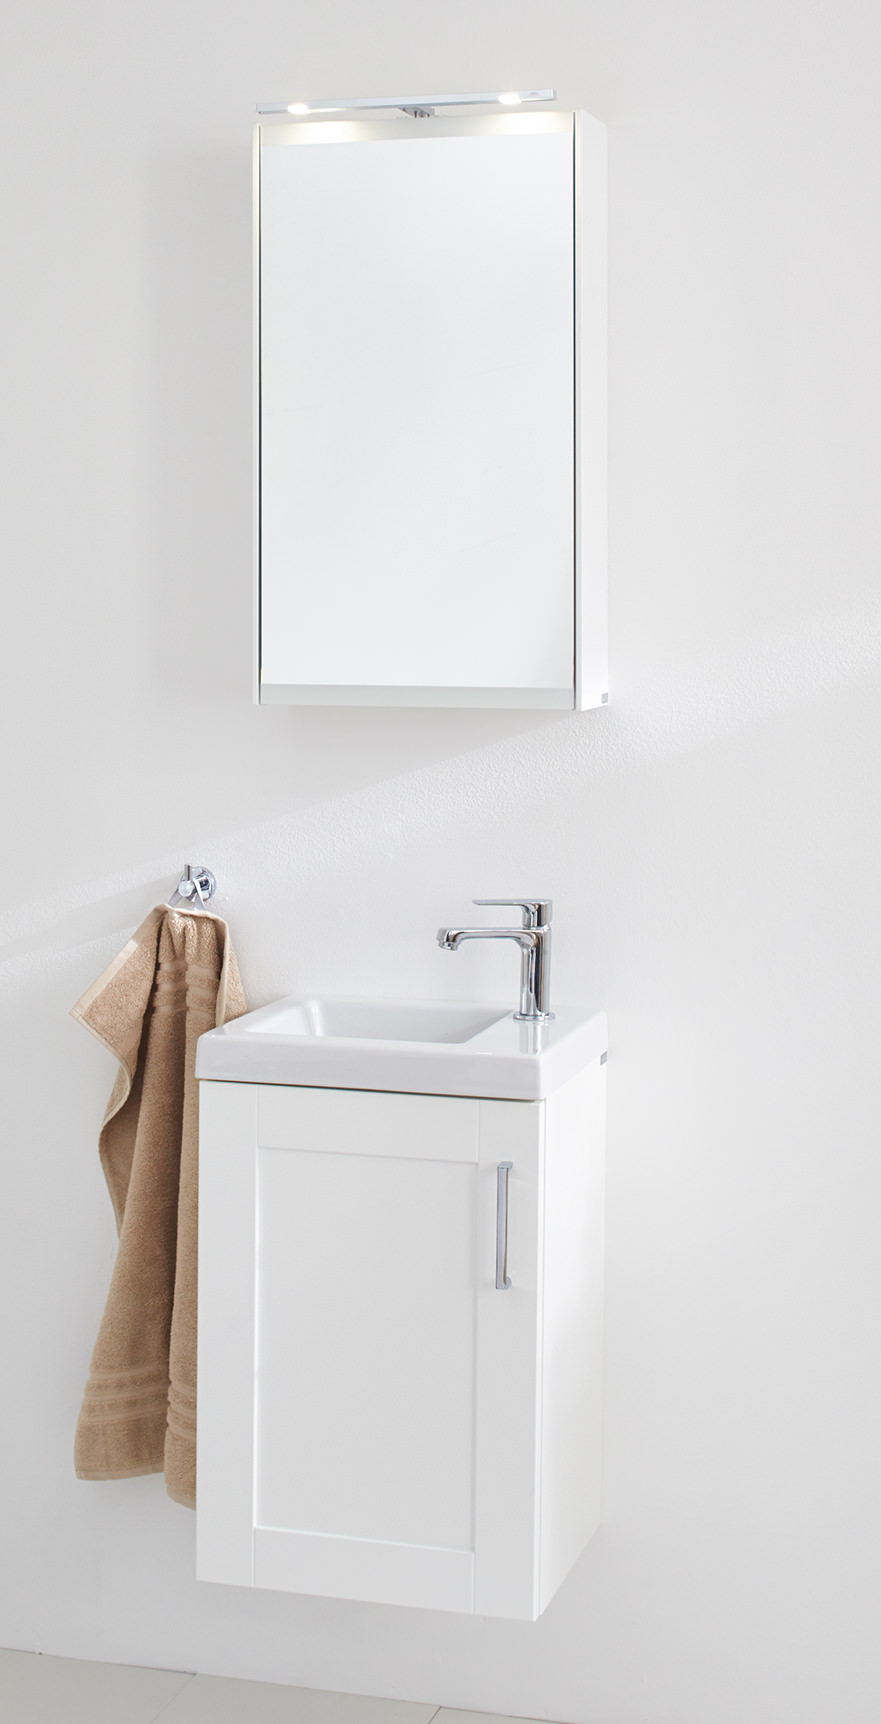 Miller london 40 white single door mirror cabinet 404 x for Bathroom furniture 700mm